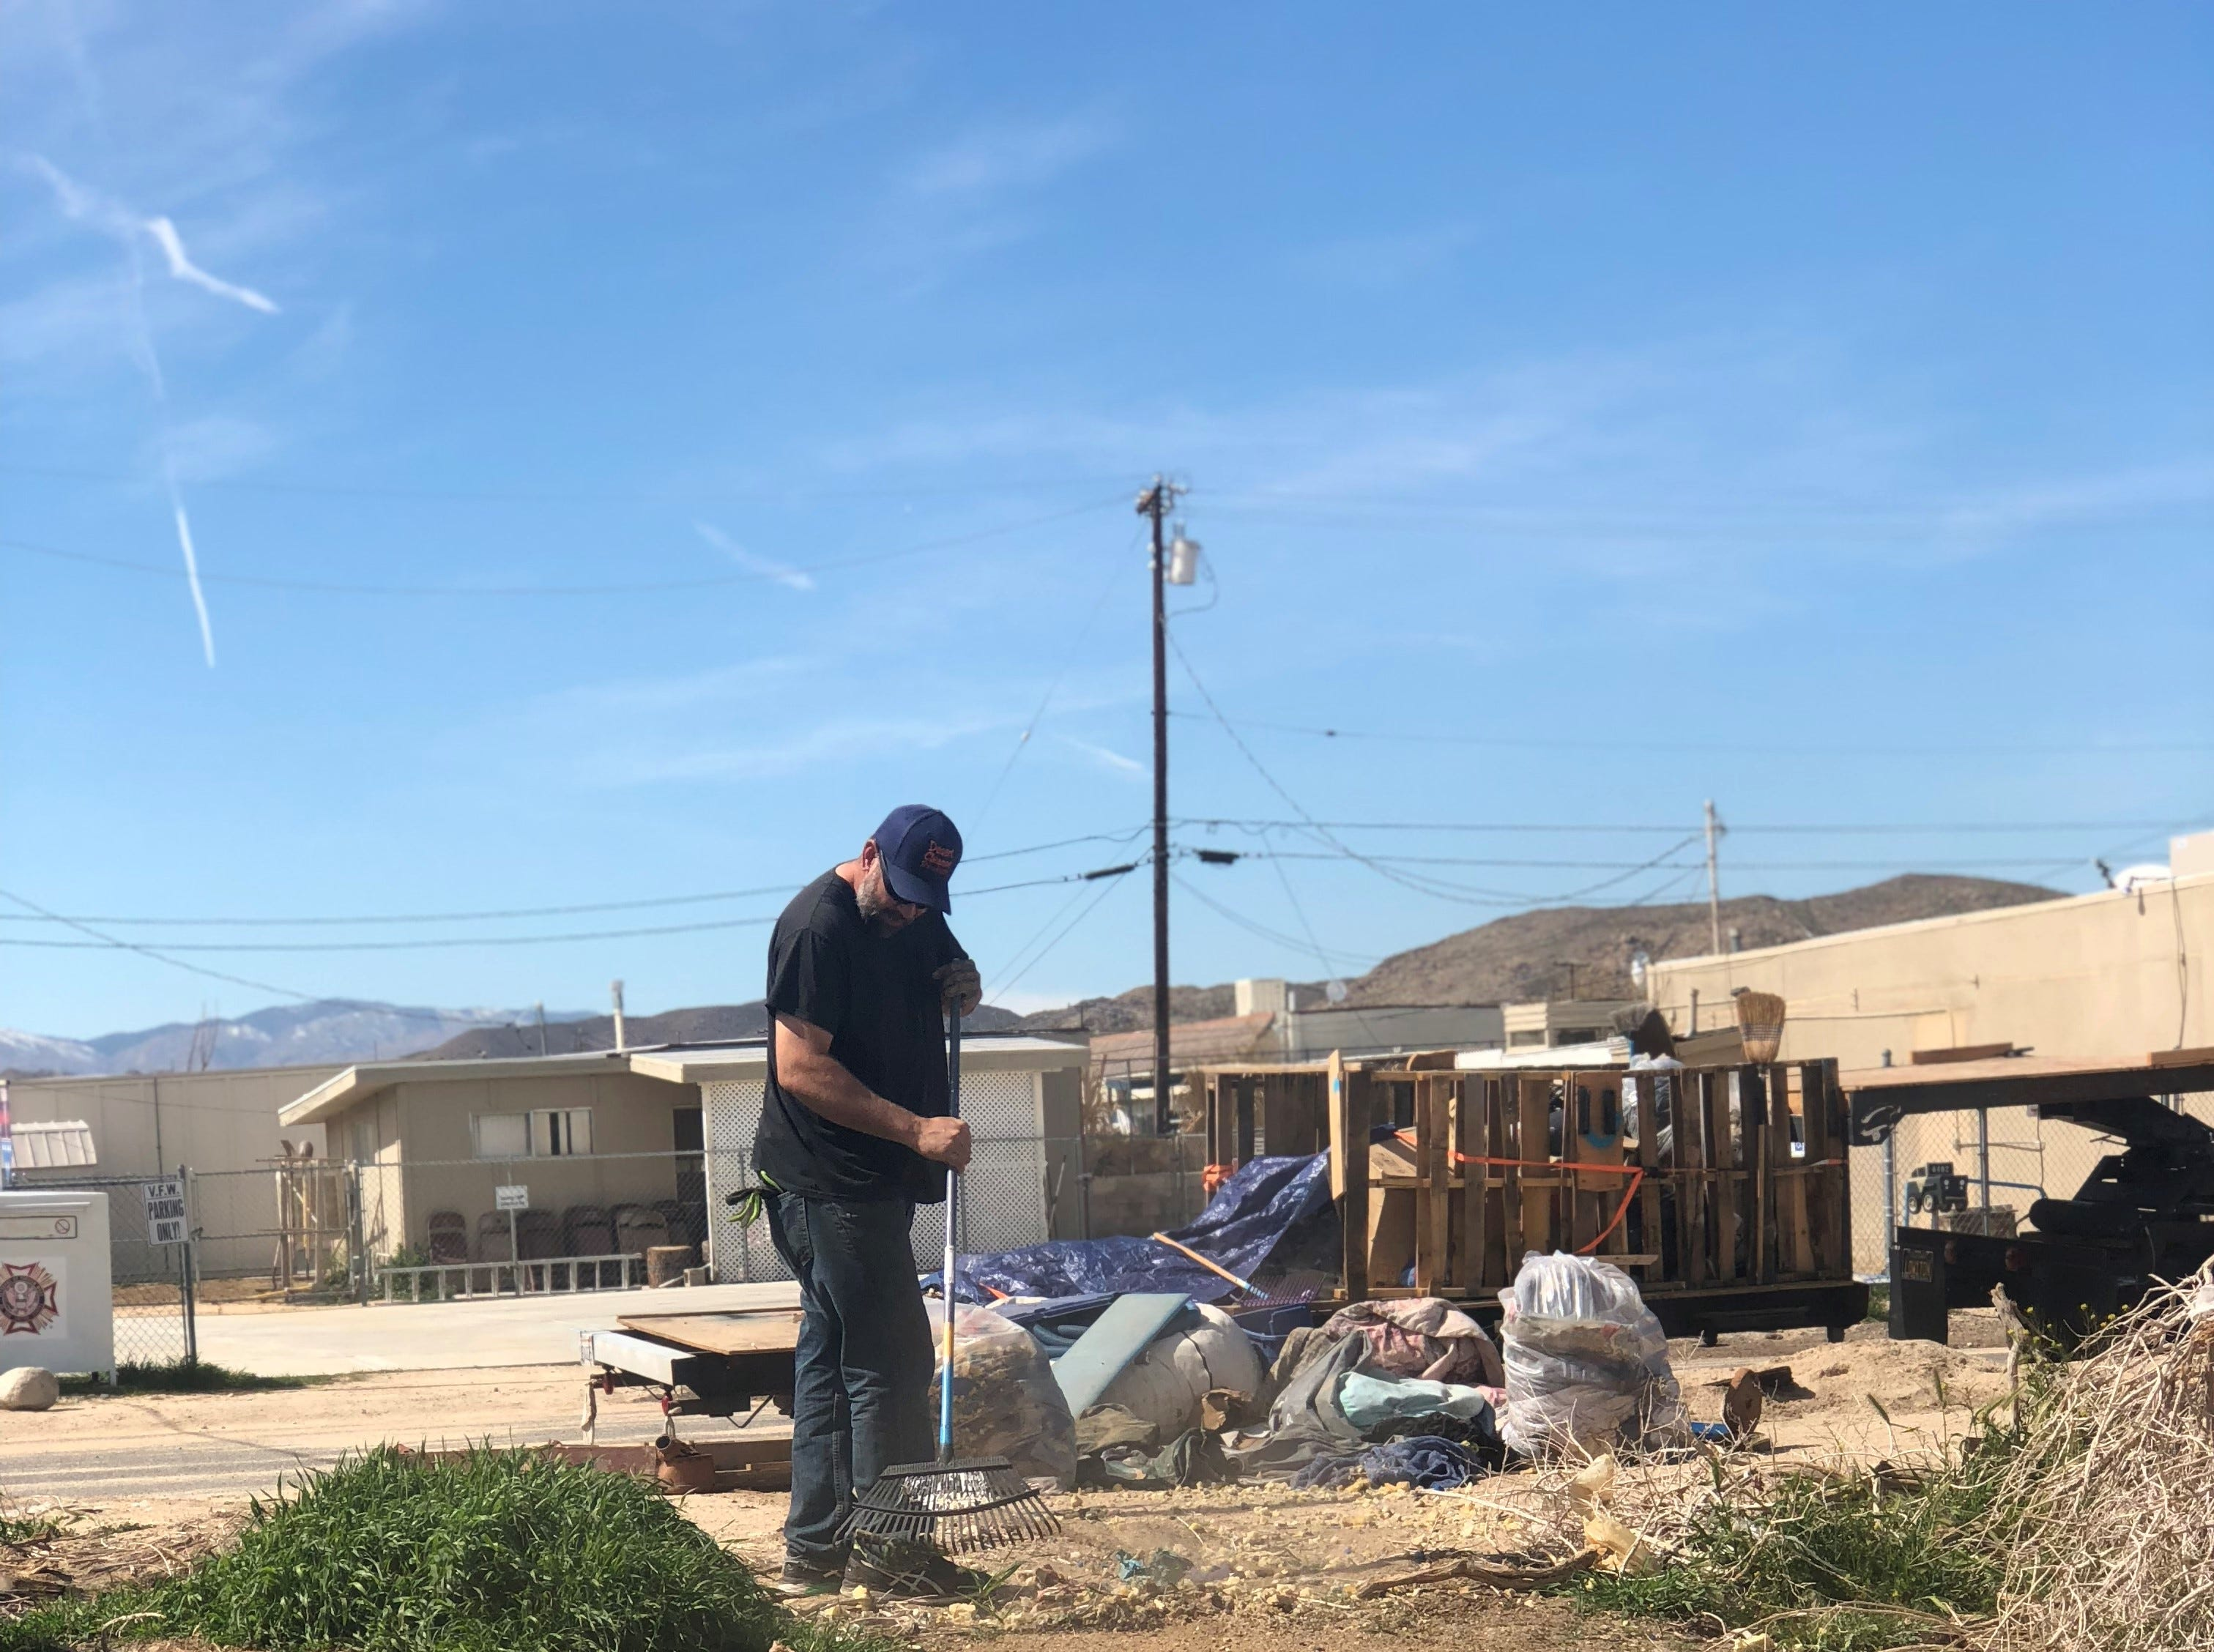 Colin Sauter, left, has been cleaning up the desert with his wife, Jillian Sauter, for more than a decade.